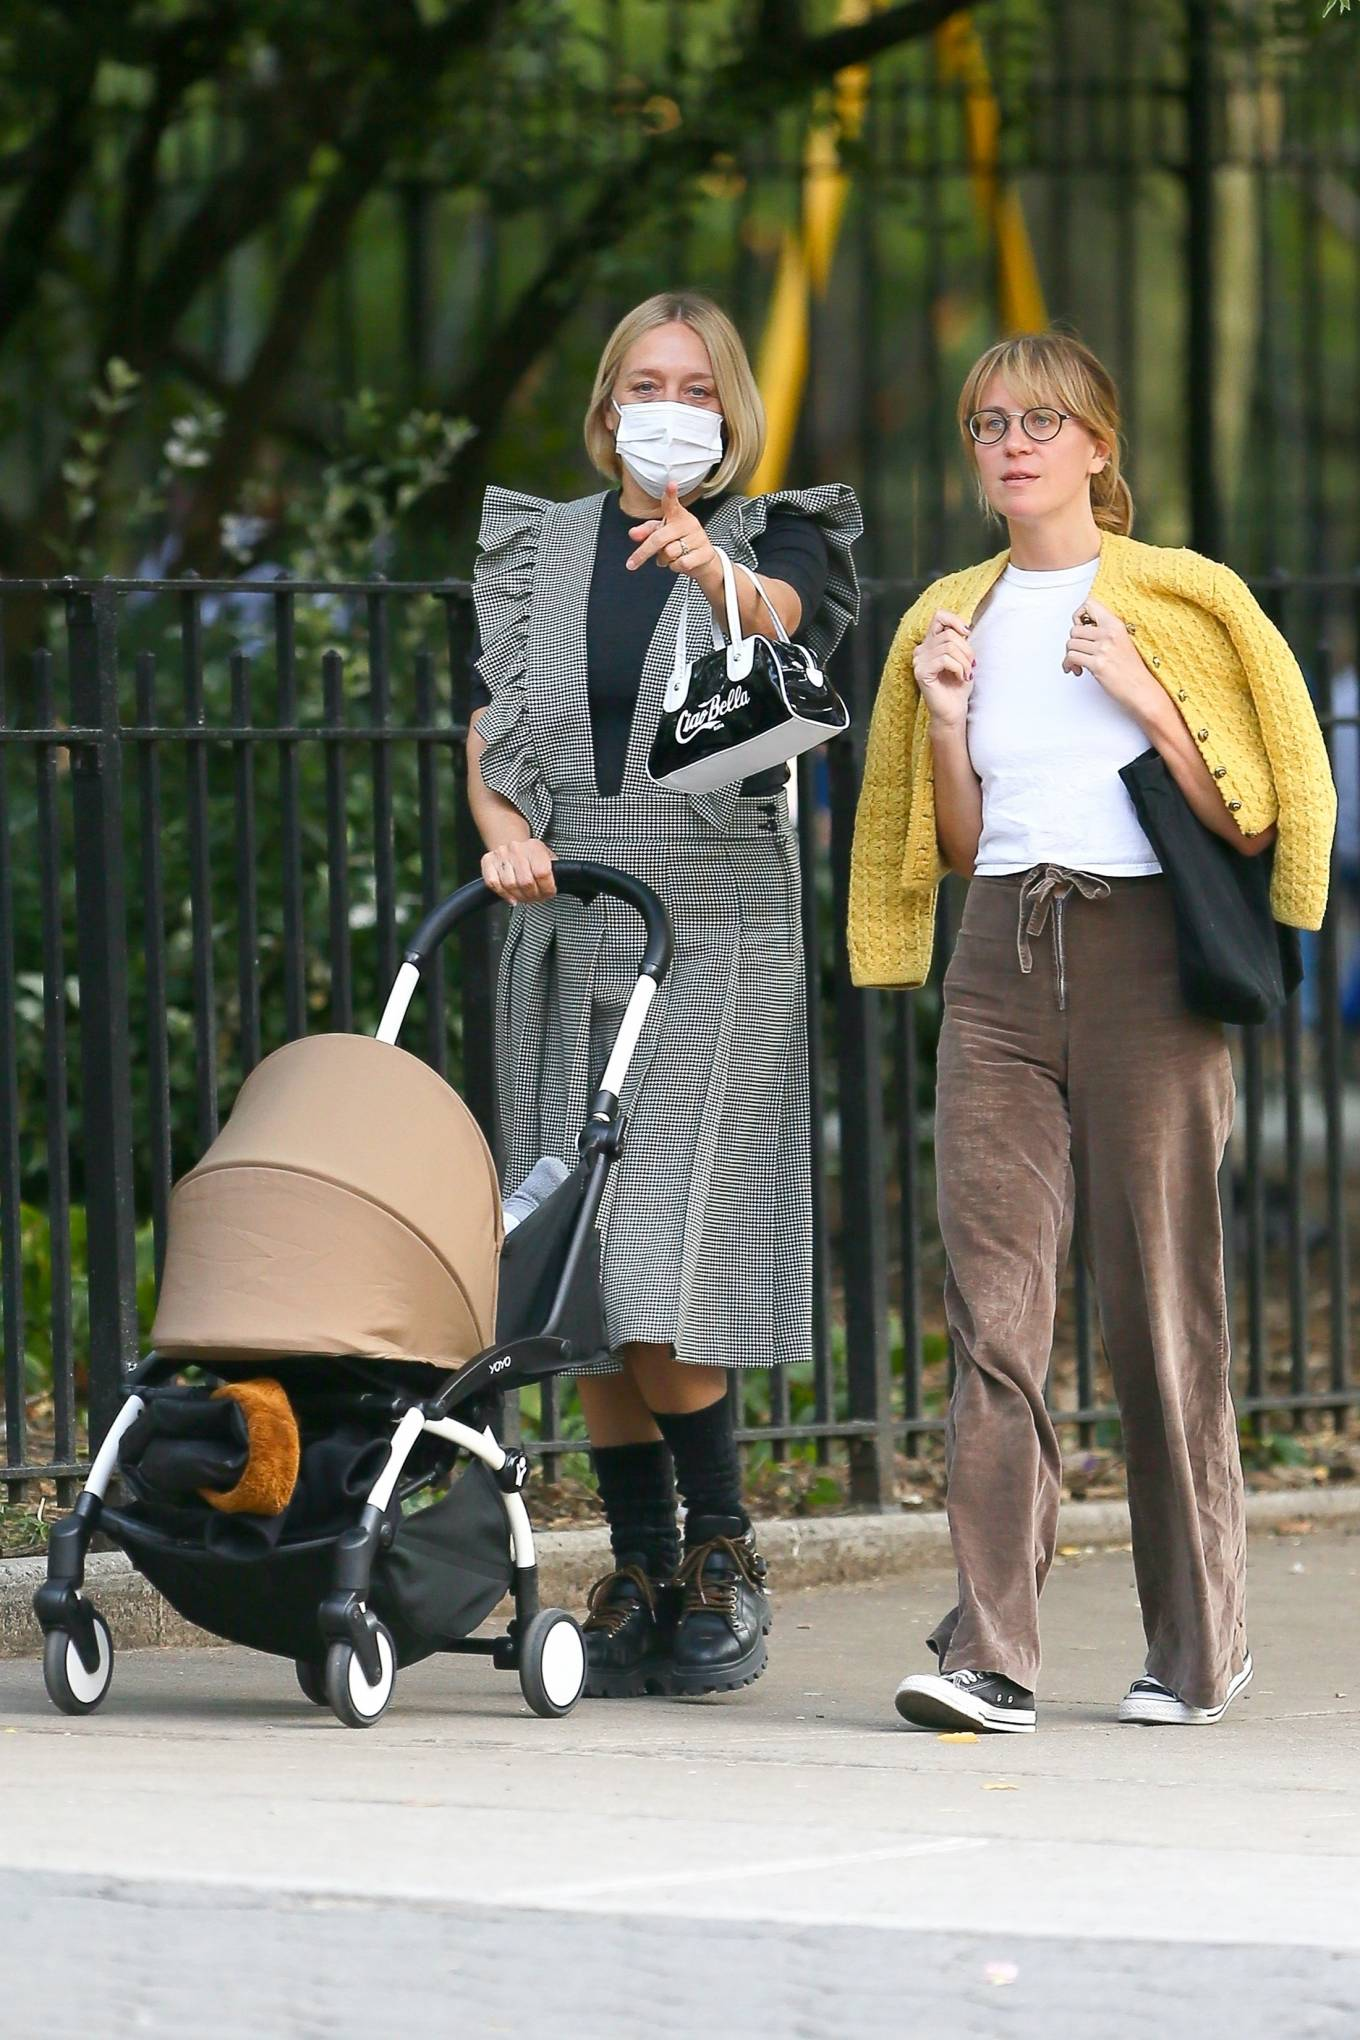 Chloe Sevigny 2020 : Chloe Sevigny – Out for a walk with her baby and a friend in New York-05